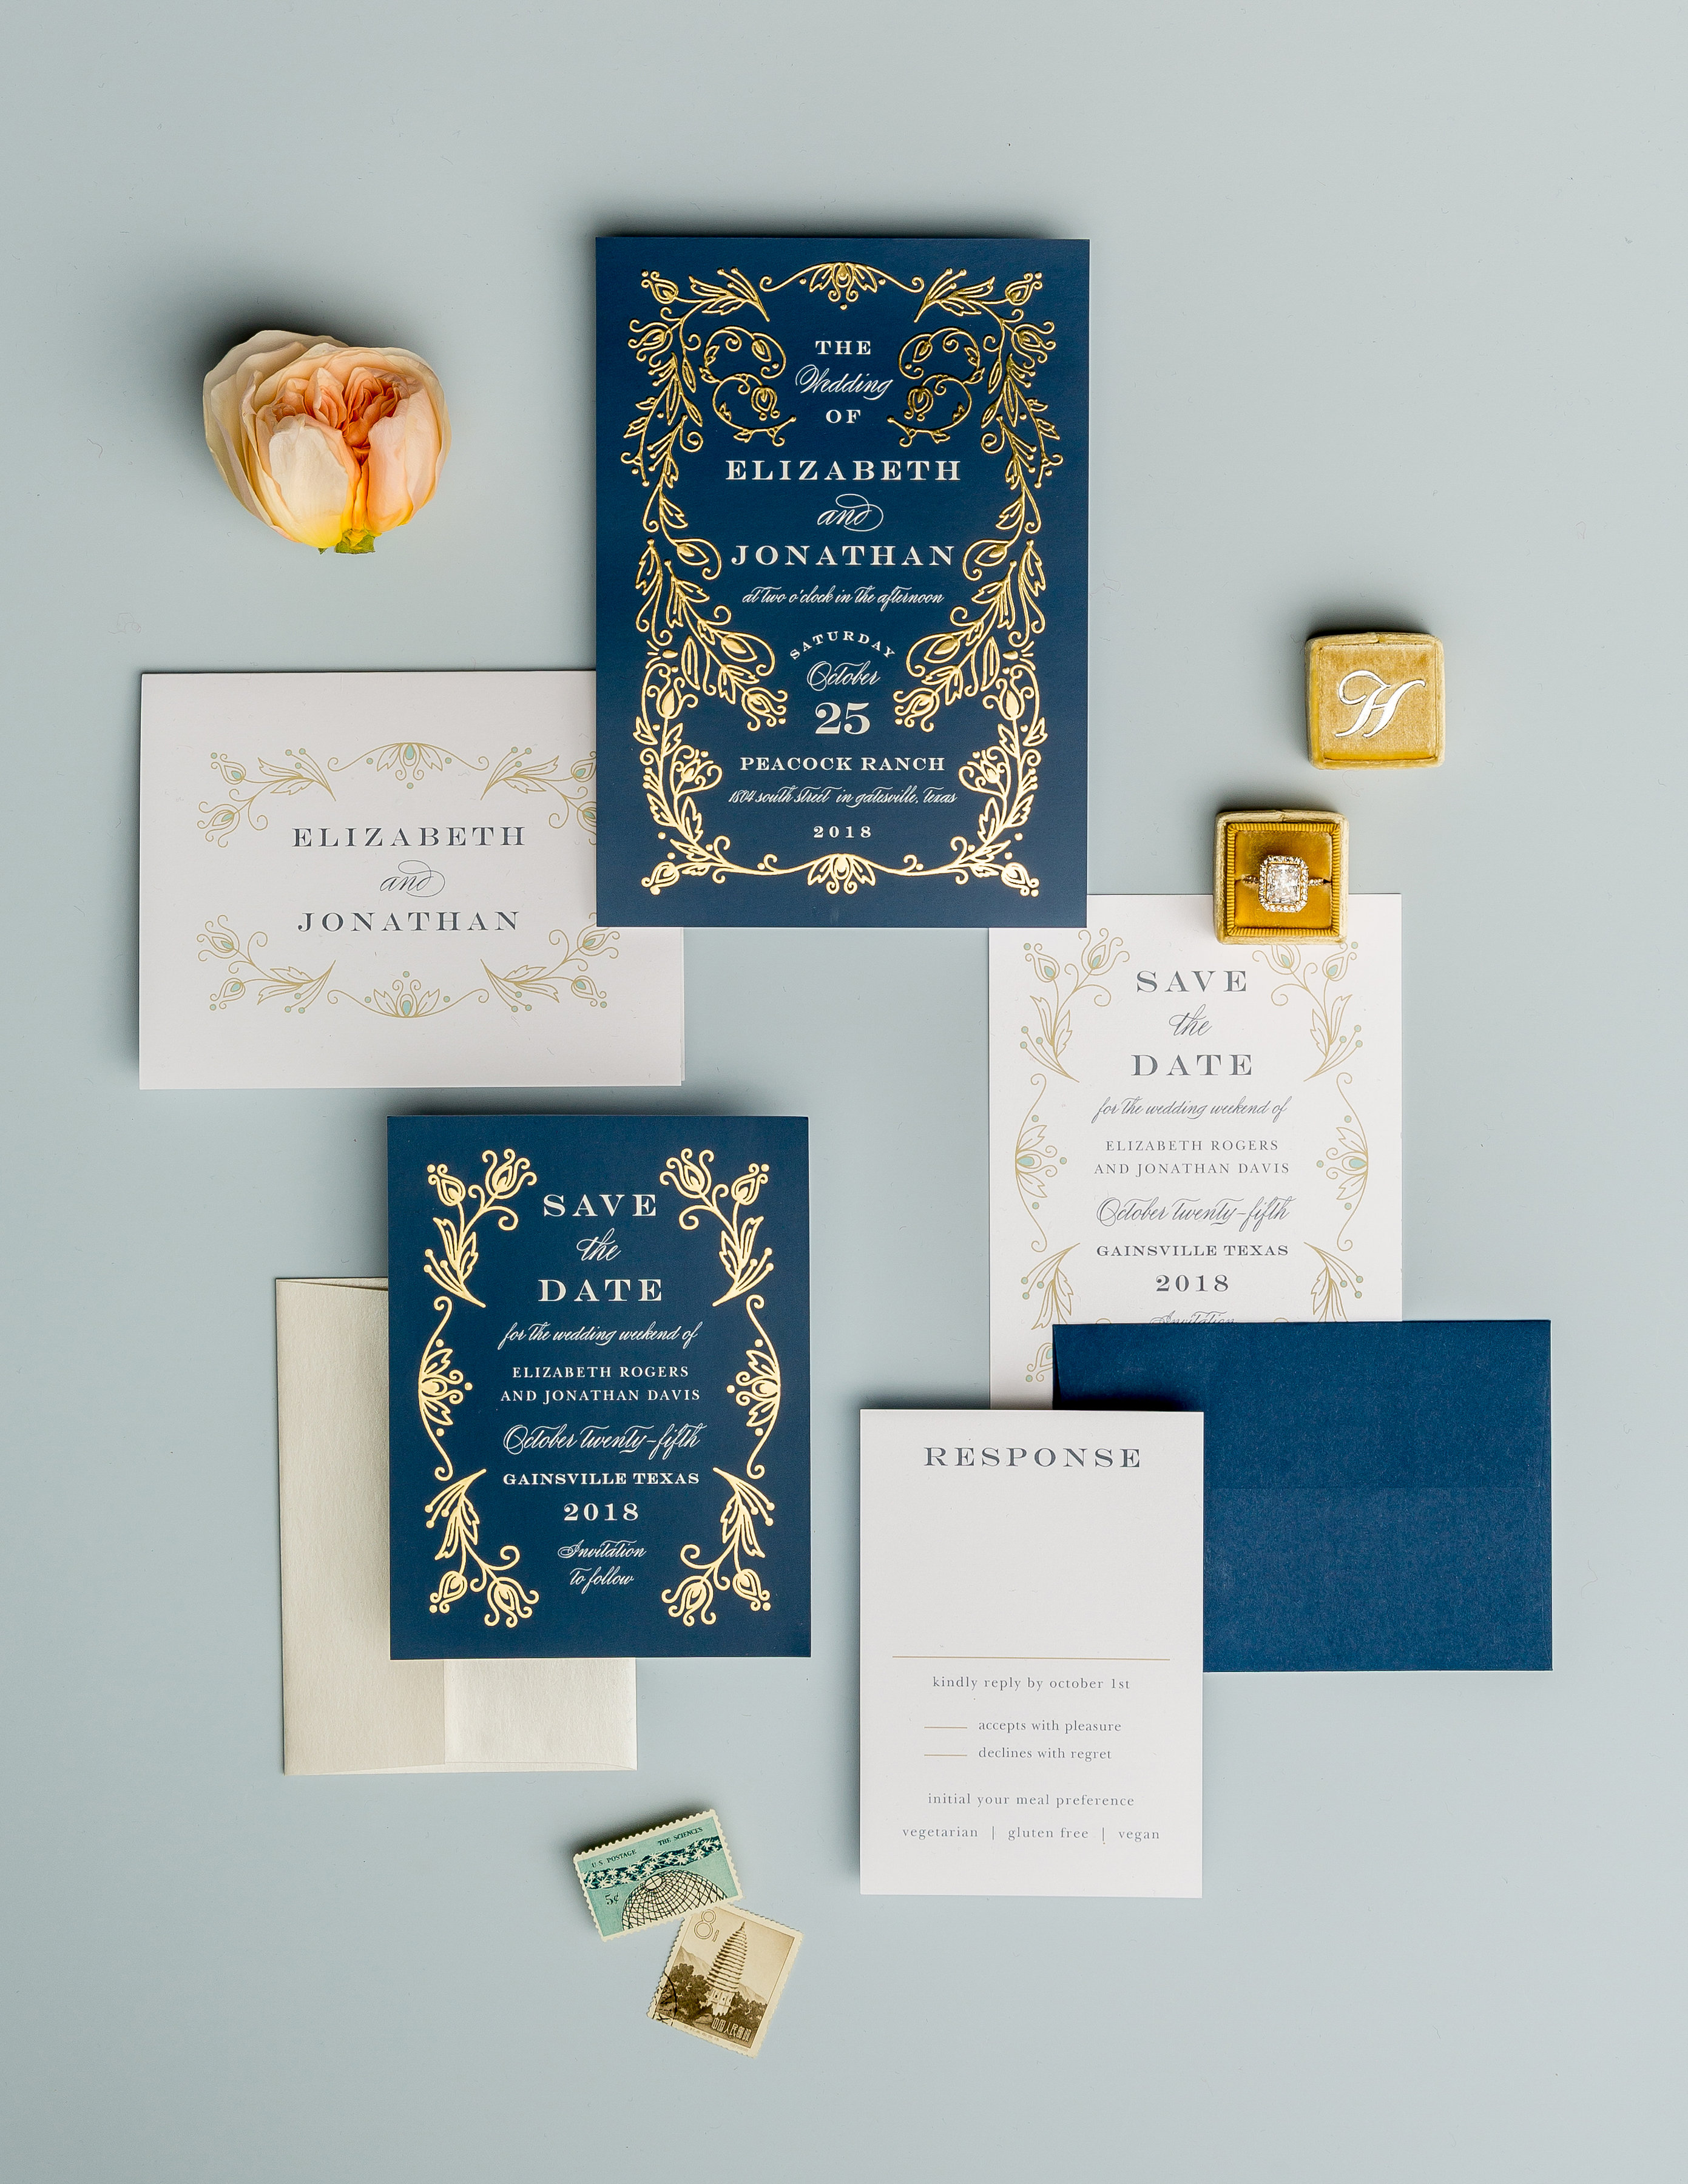 Trendy fall wedding invites with basic invite its a glam thing all foil is good foil but when it comes to fall wedding invites gold foil rules whether its raised or flat gold foil details take any design to the stopboris Choice Image